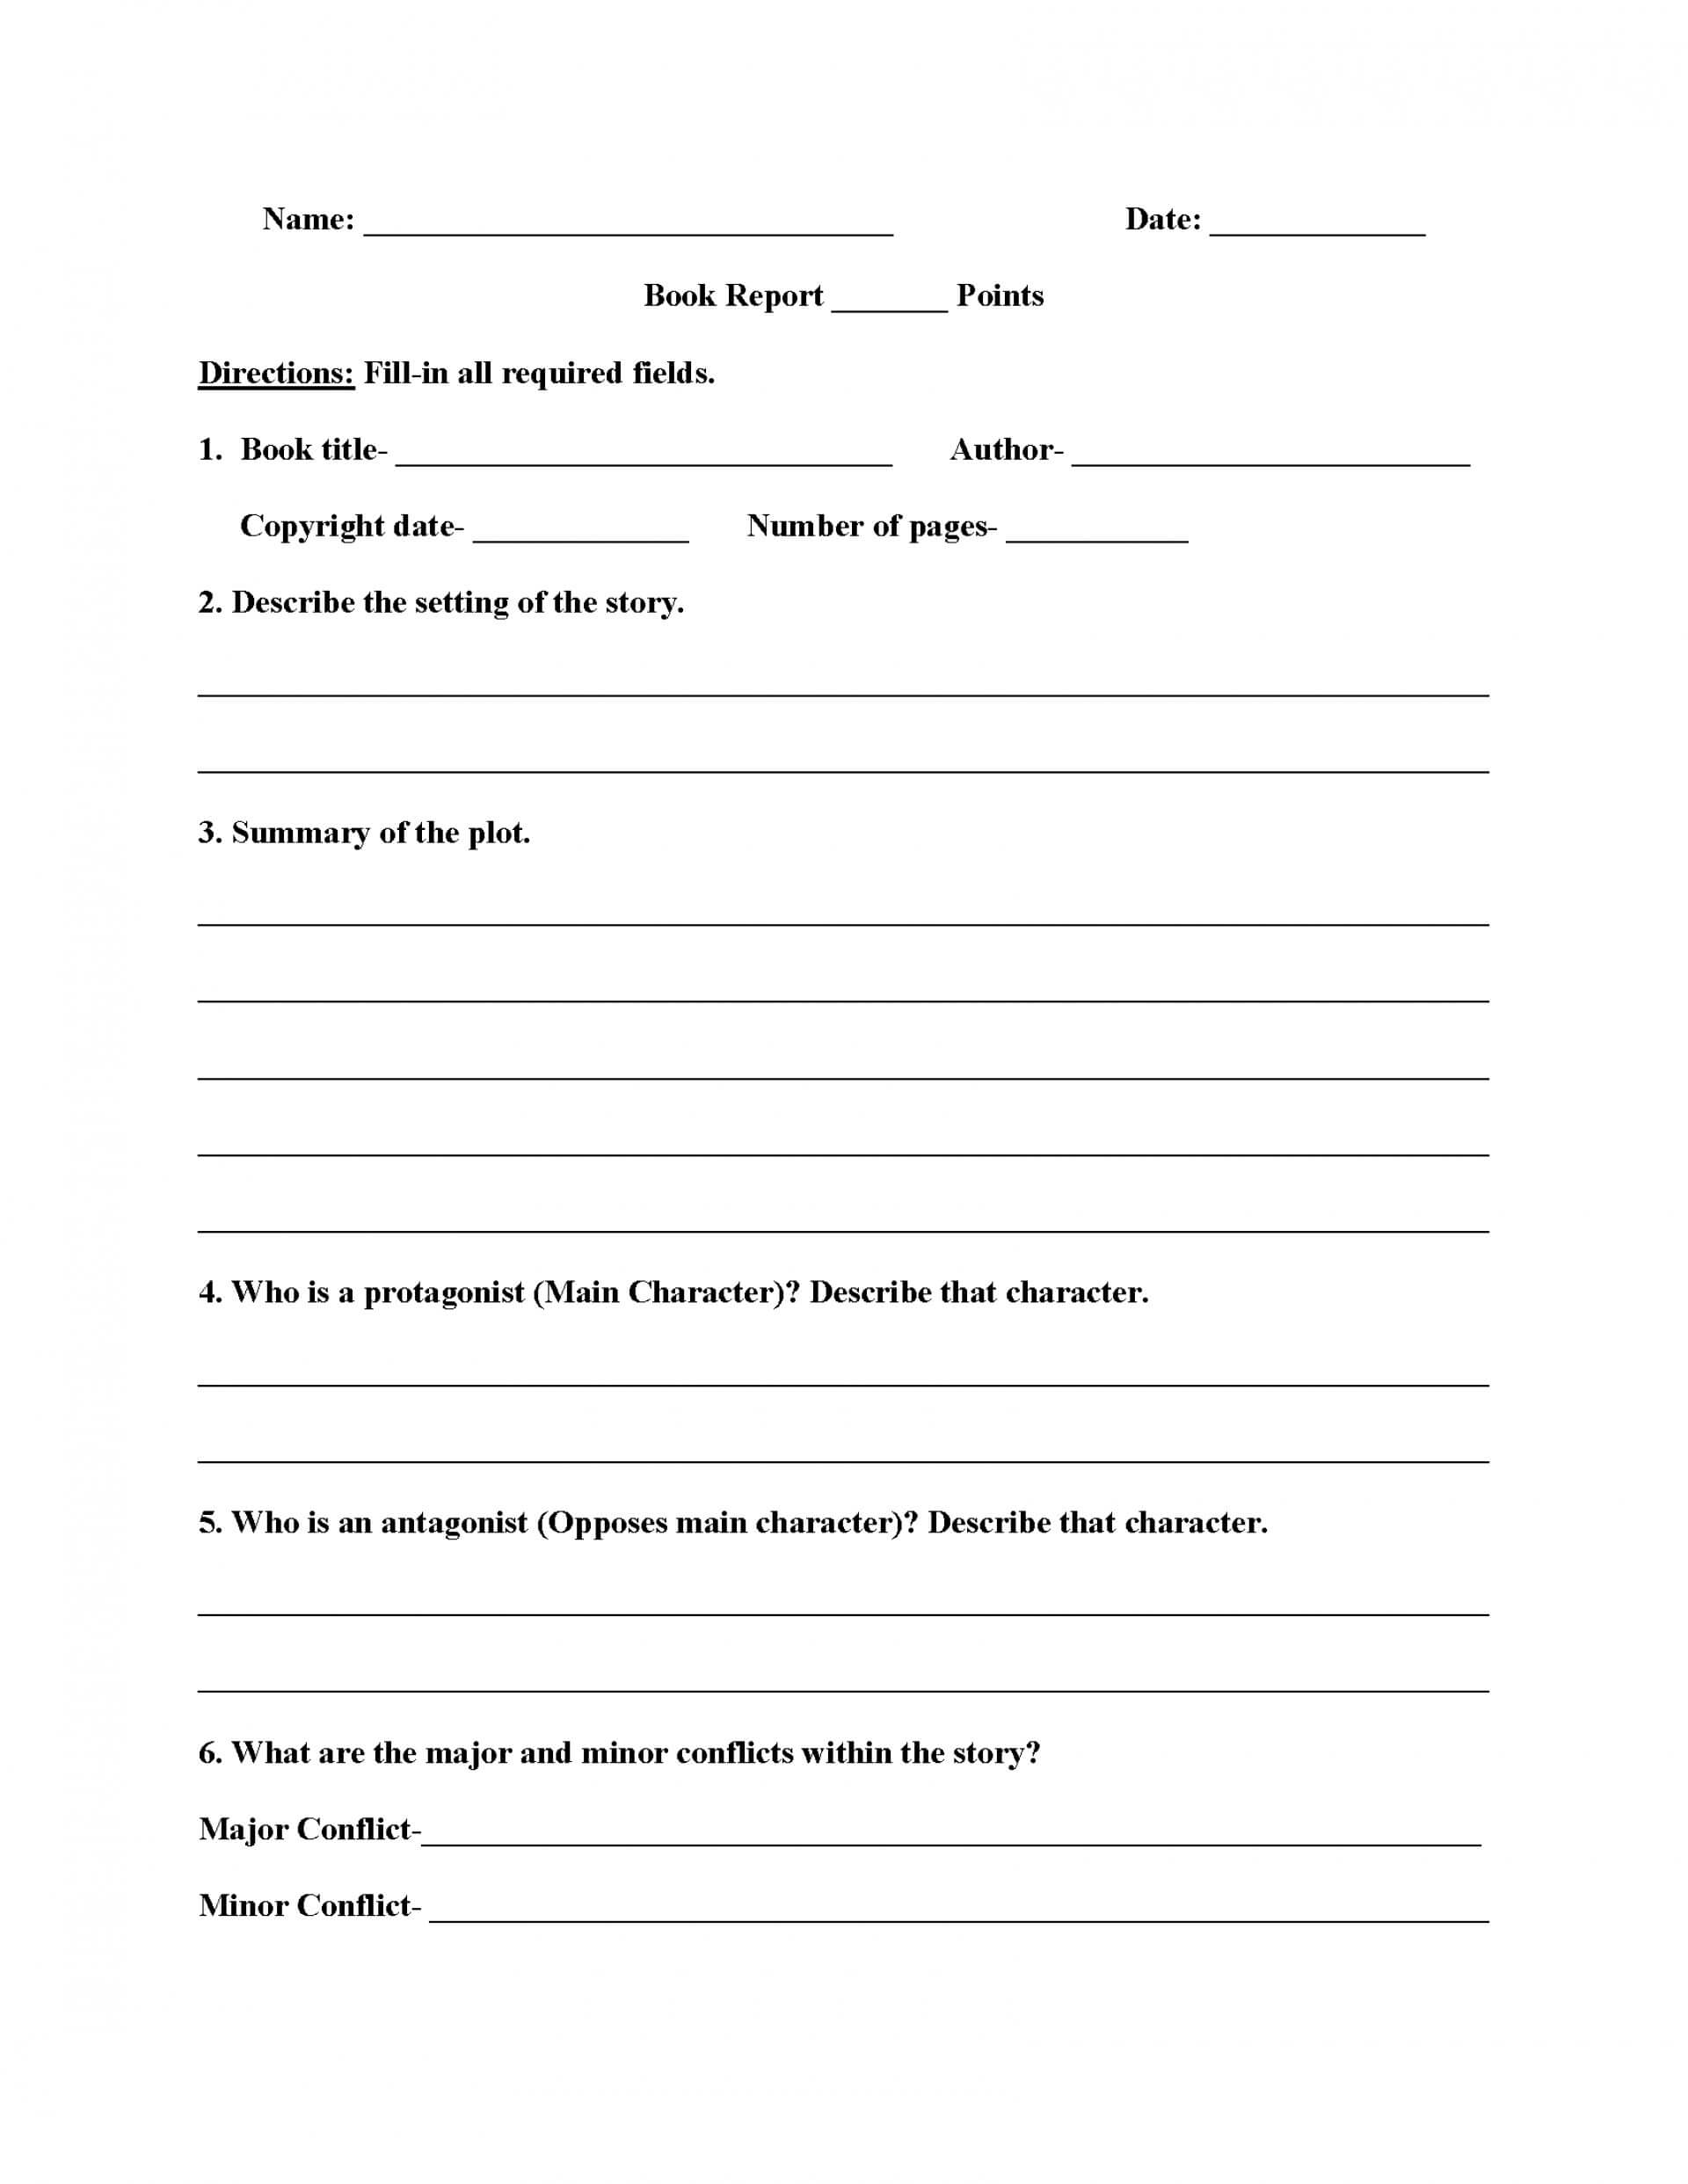 010 6Th Grade Book Report Template Ideas 3Rd Pdf Best Of In Book Report Template Grade 1